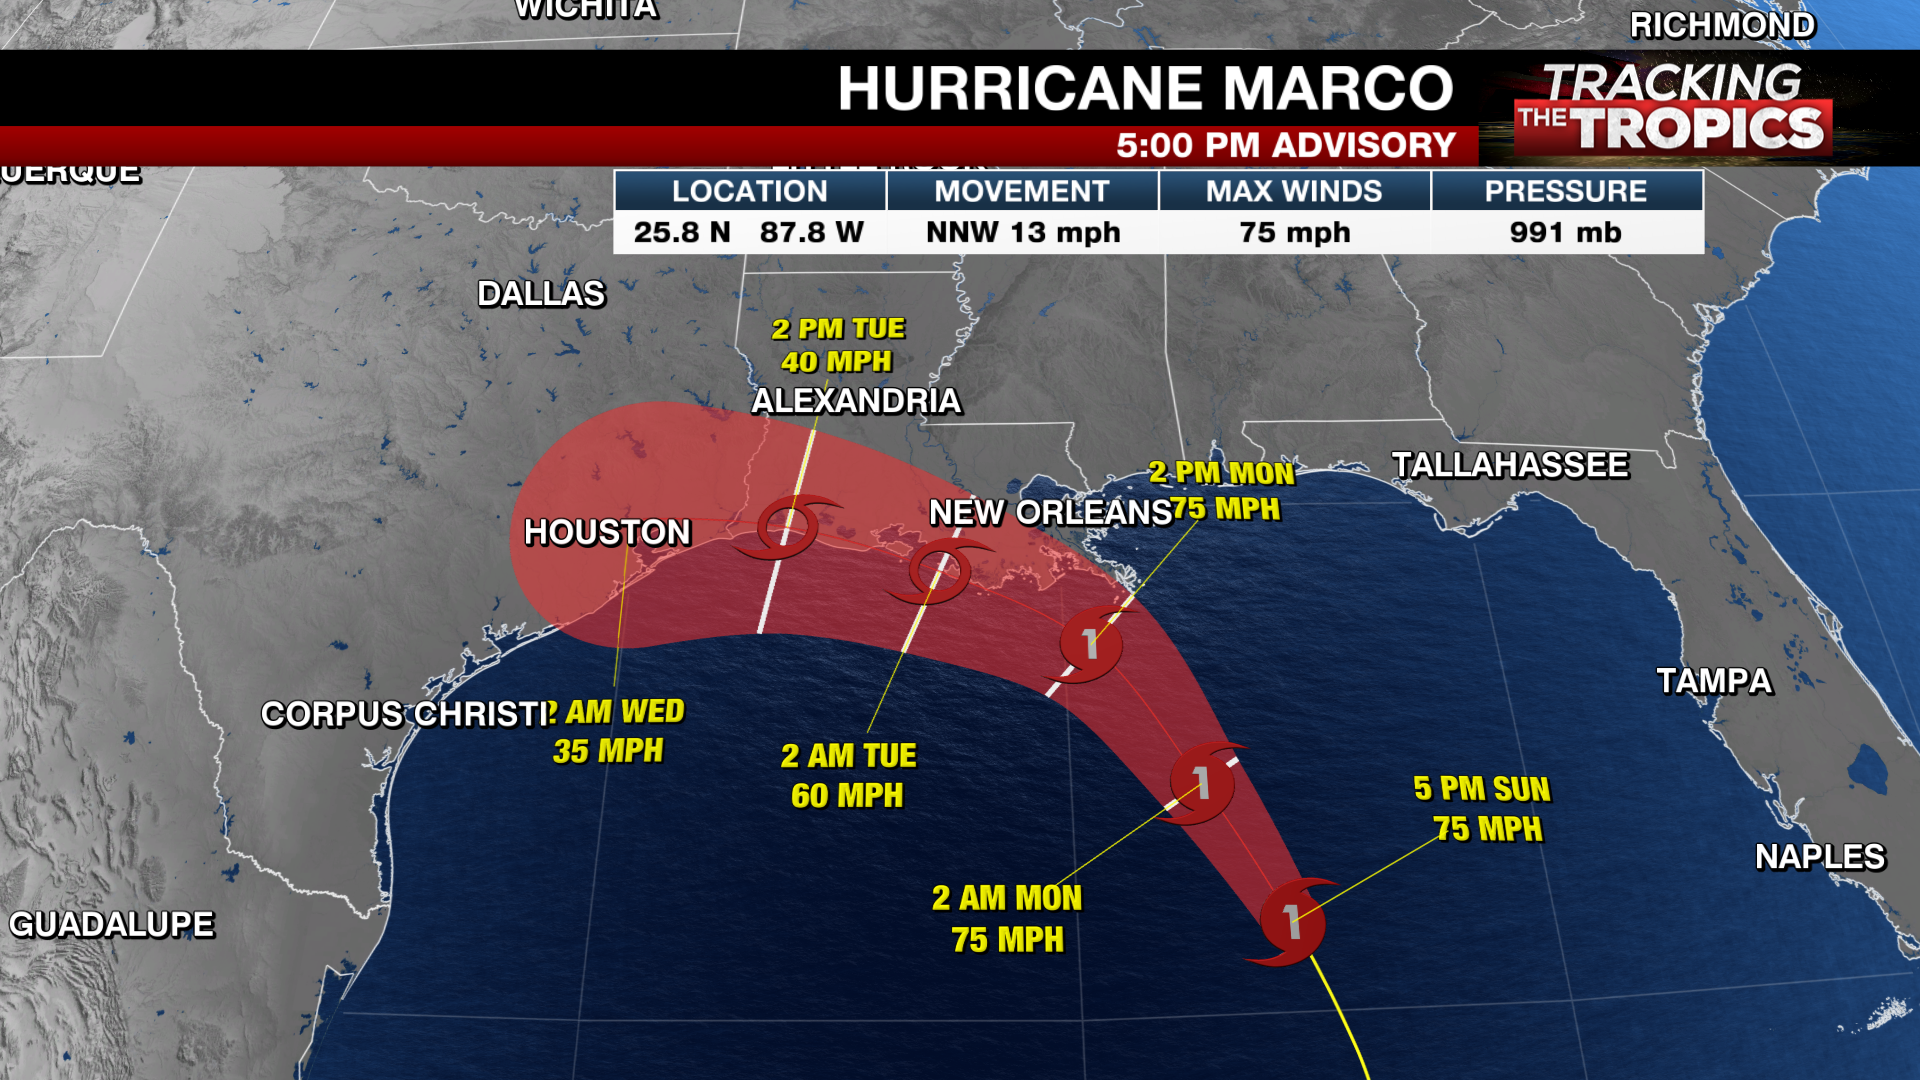 Tracking The Tropics Marco Weakens To Tropical Storm As It Moves Over The Gulf Laura Continues To Strengthen Krqe News 13